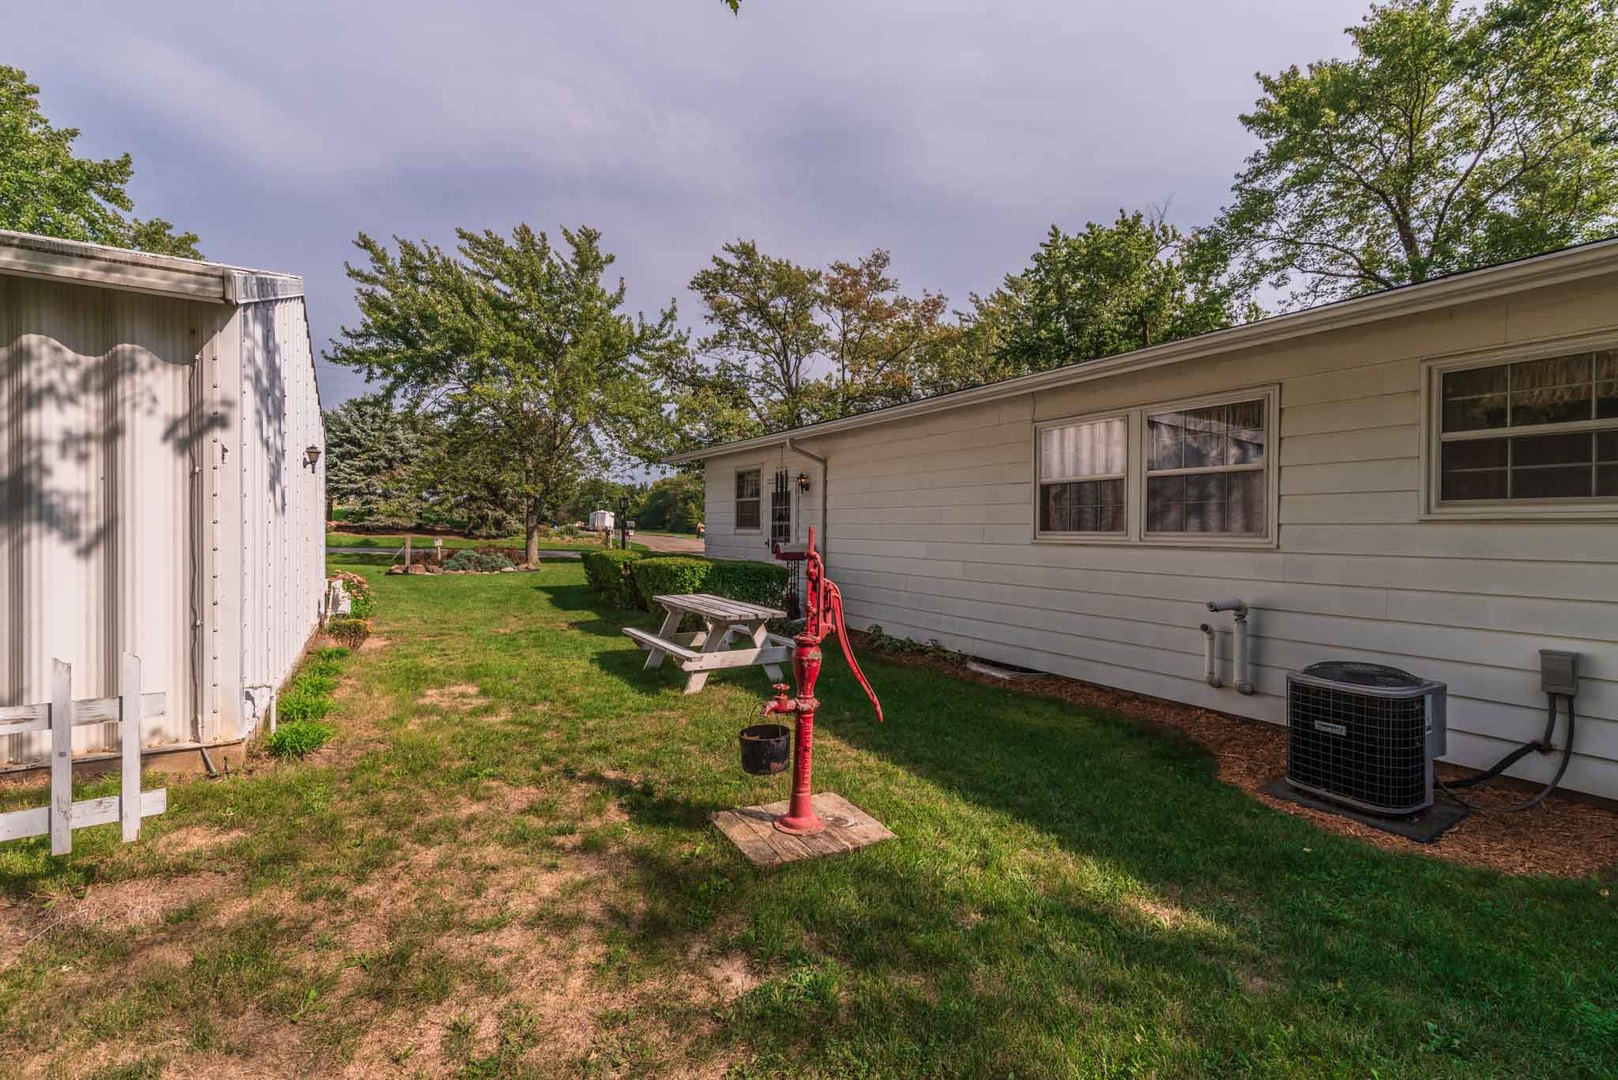 25032 North 2225 East, Lexington, Illinois, 61753